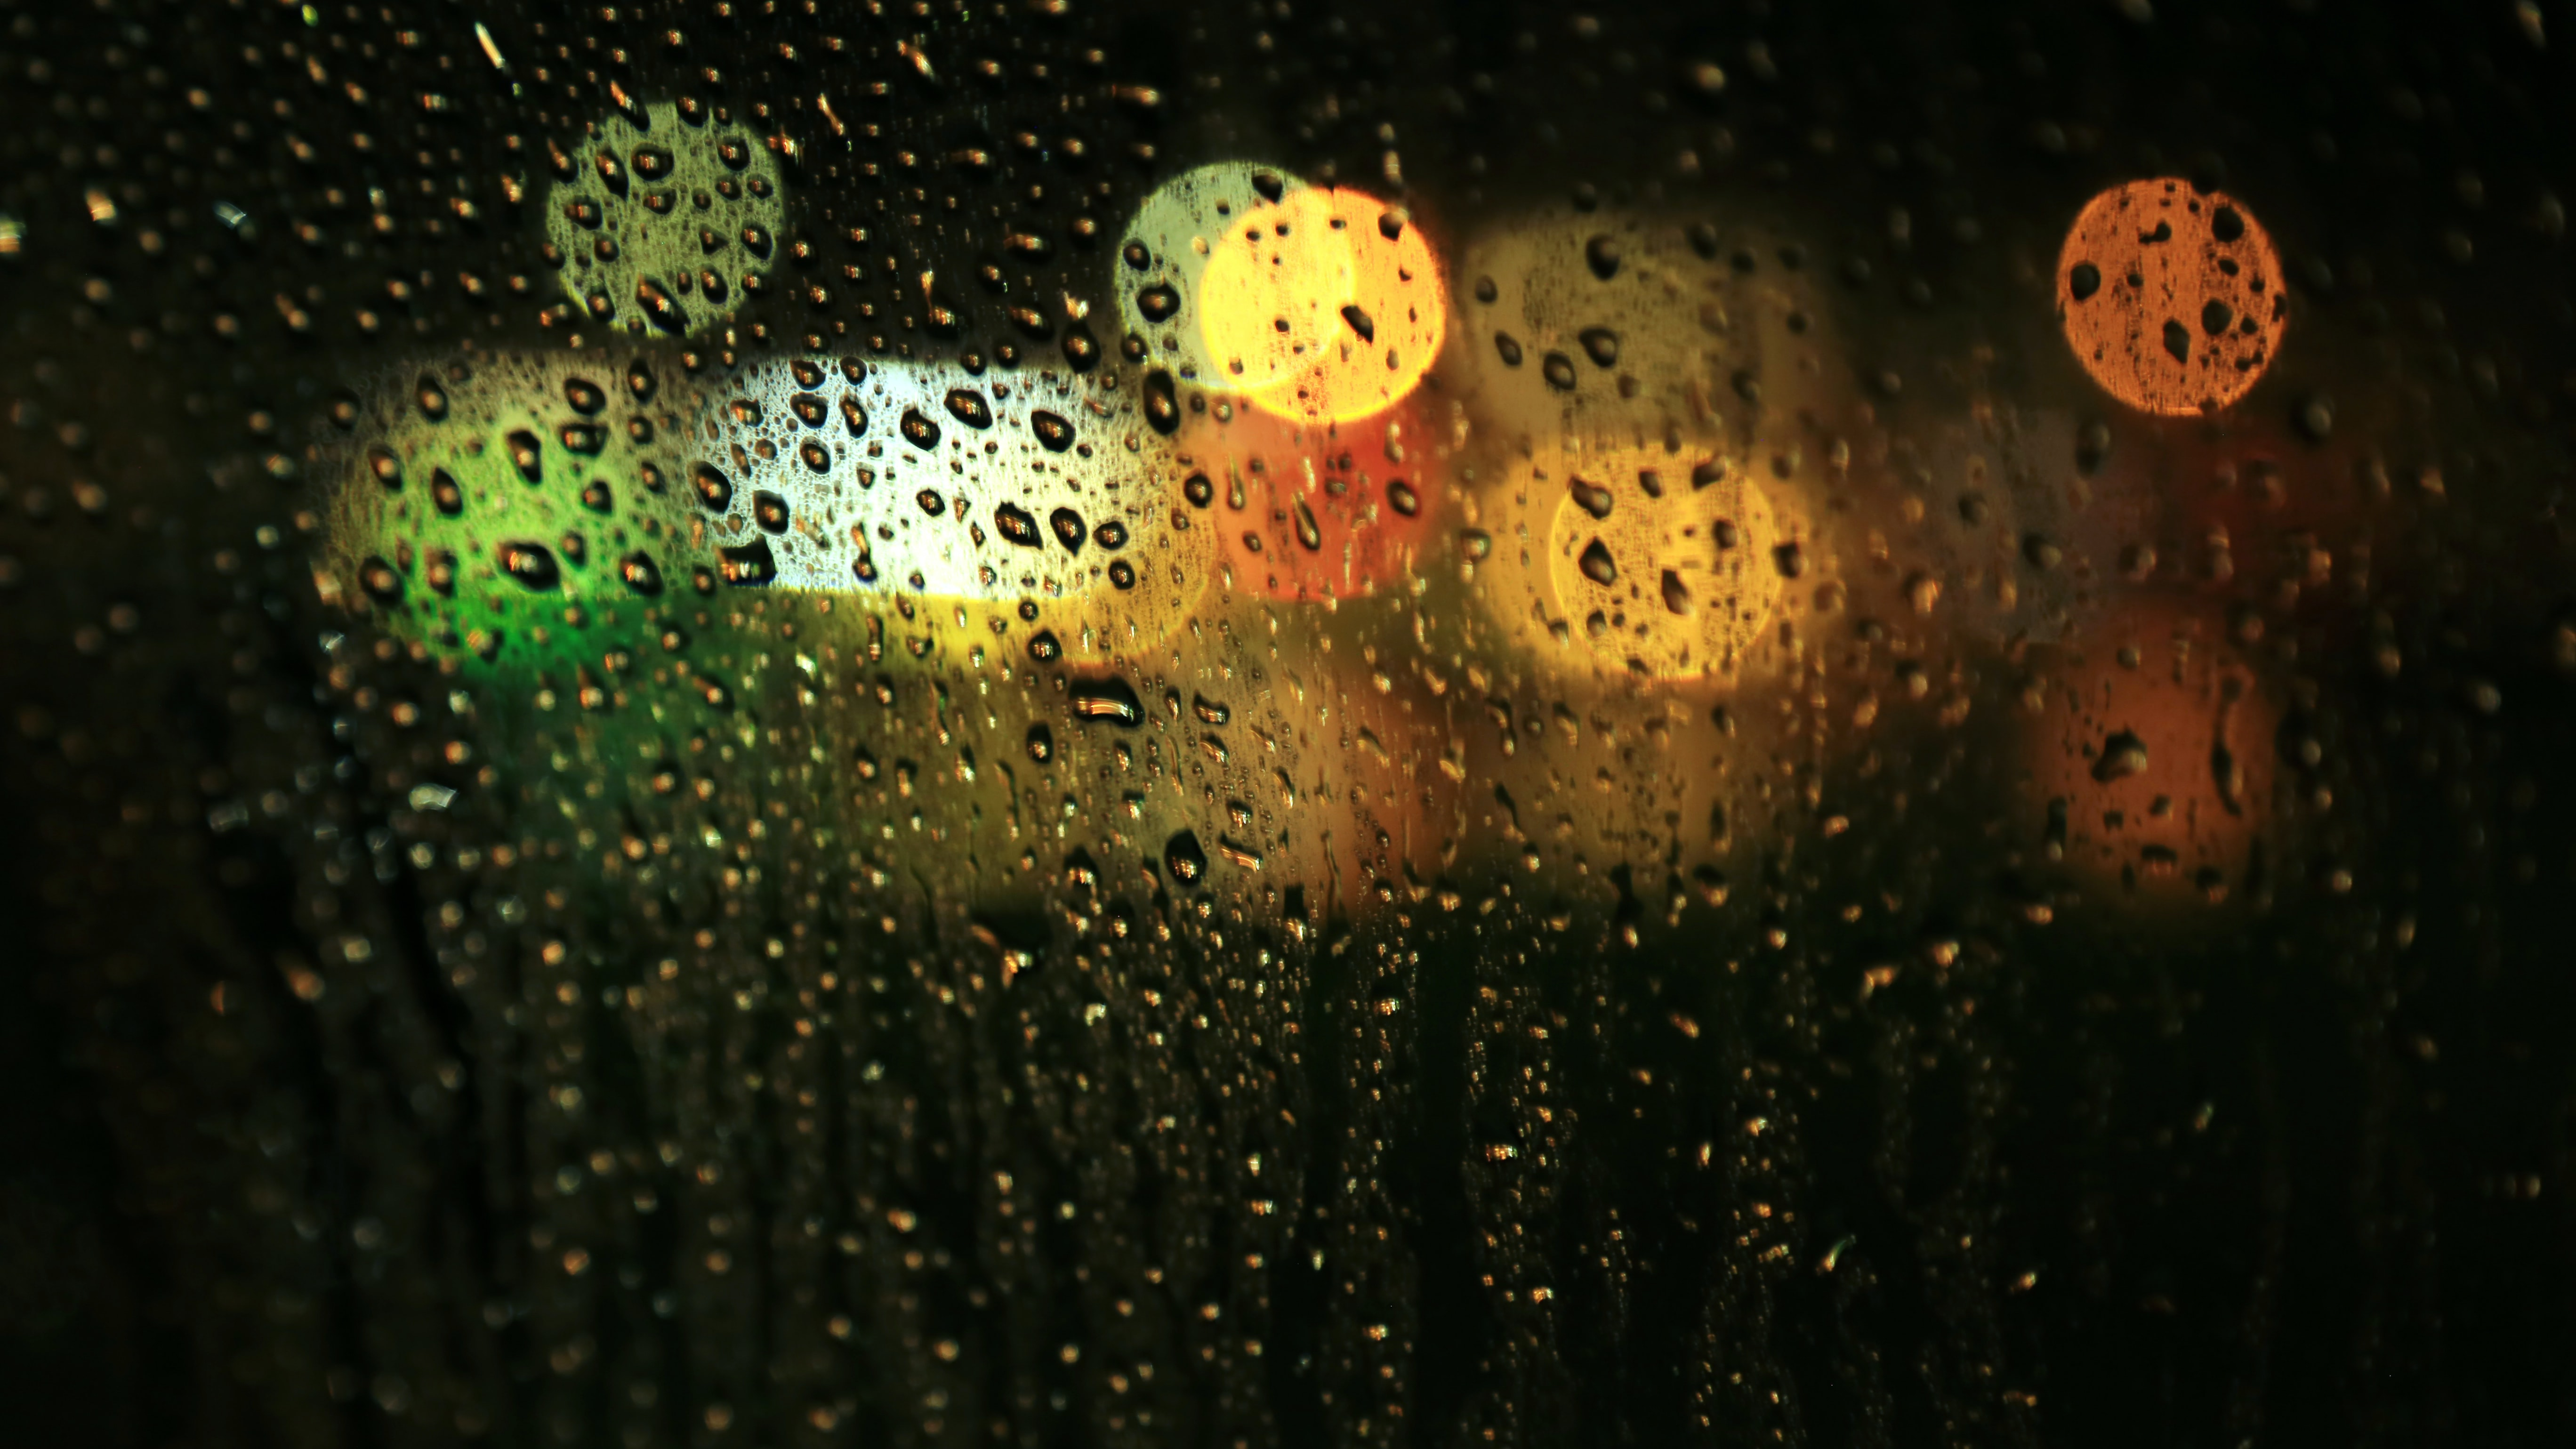 A wet window, from the driver's perspective.